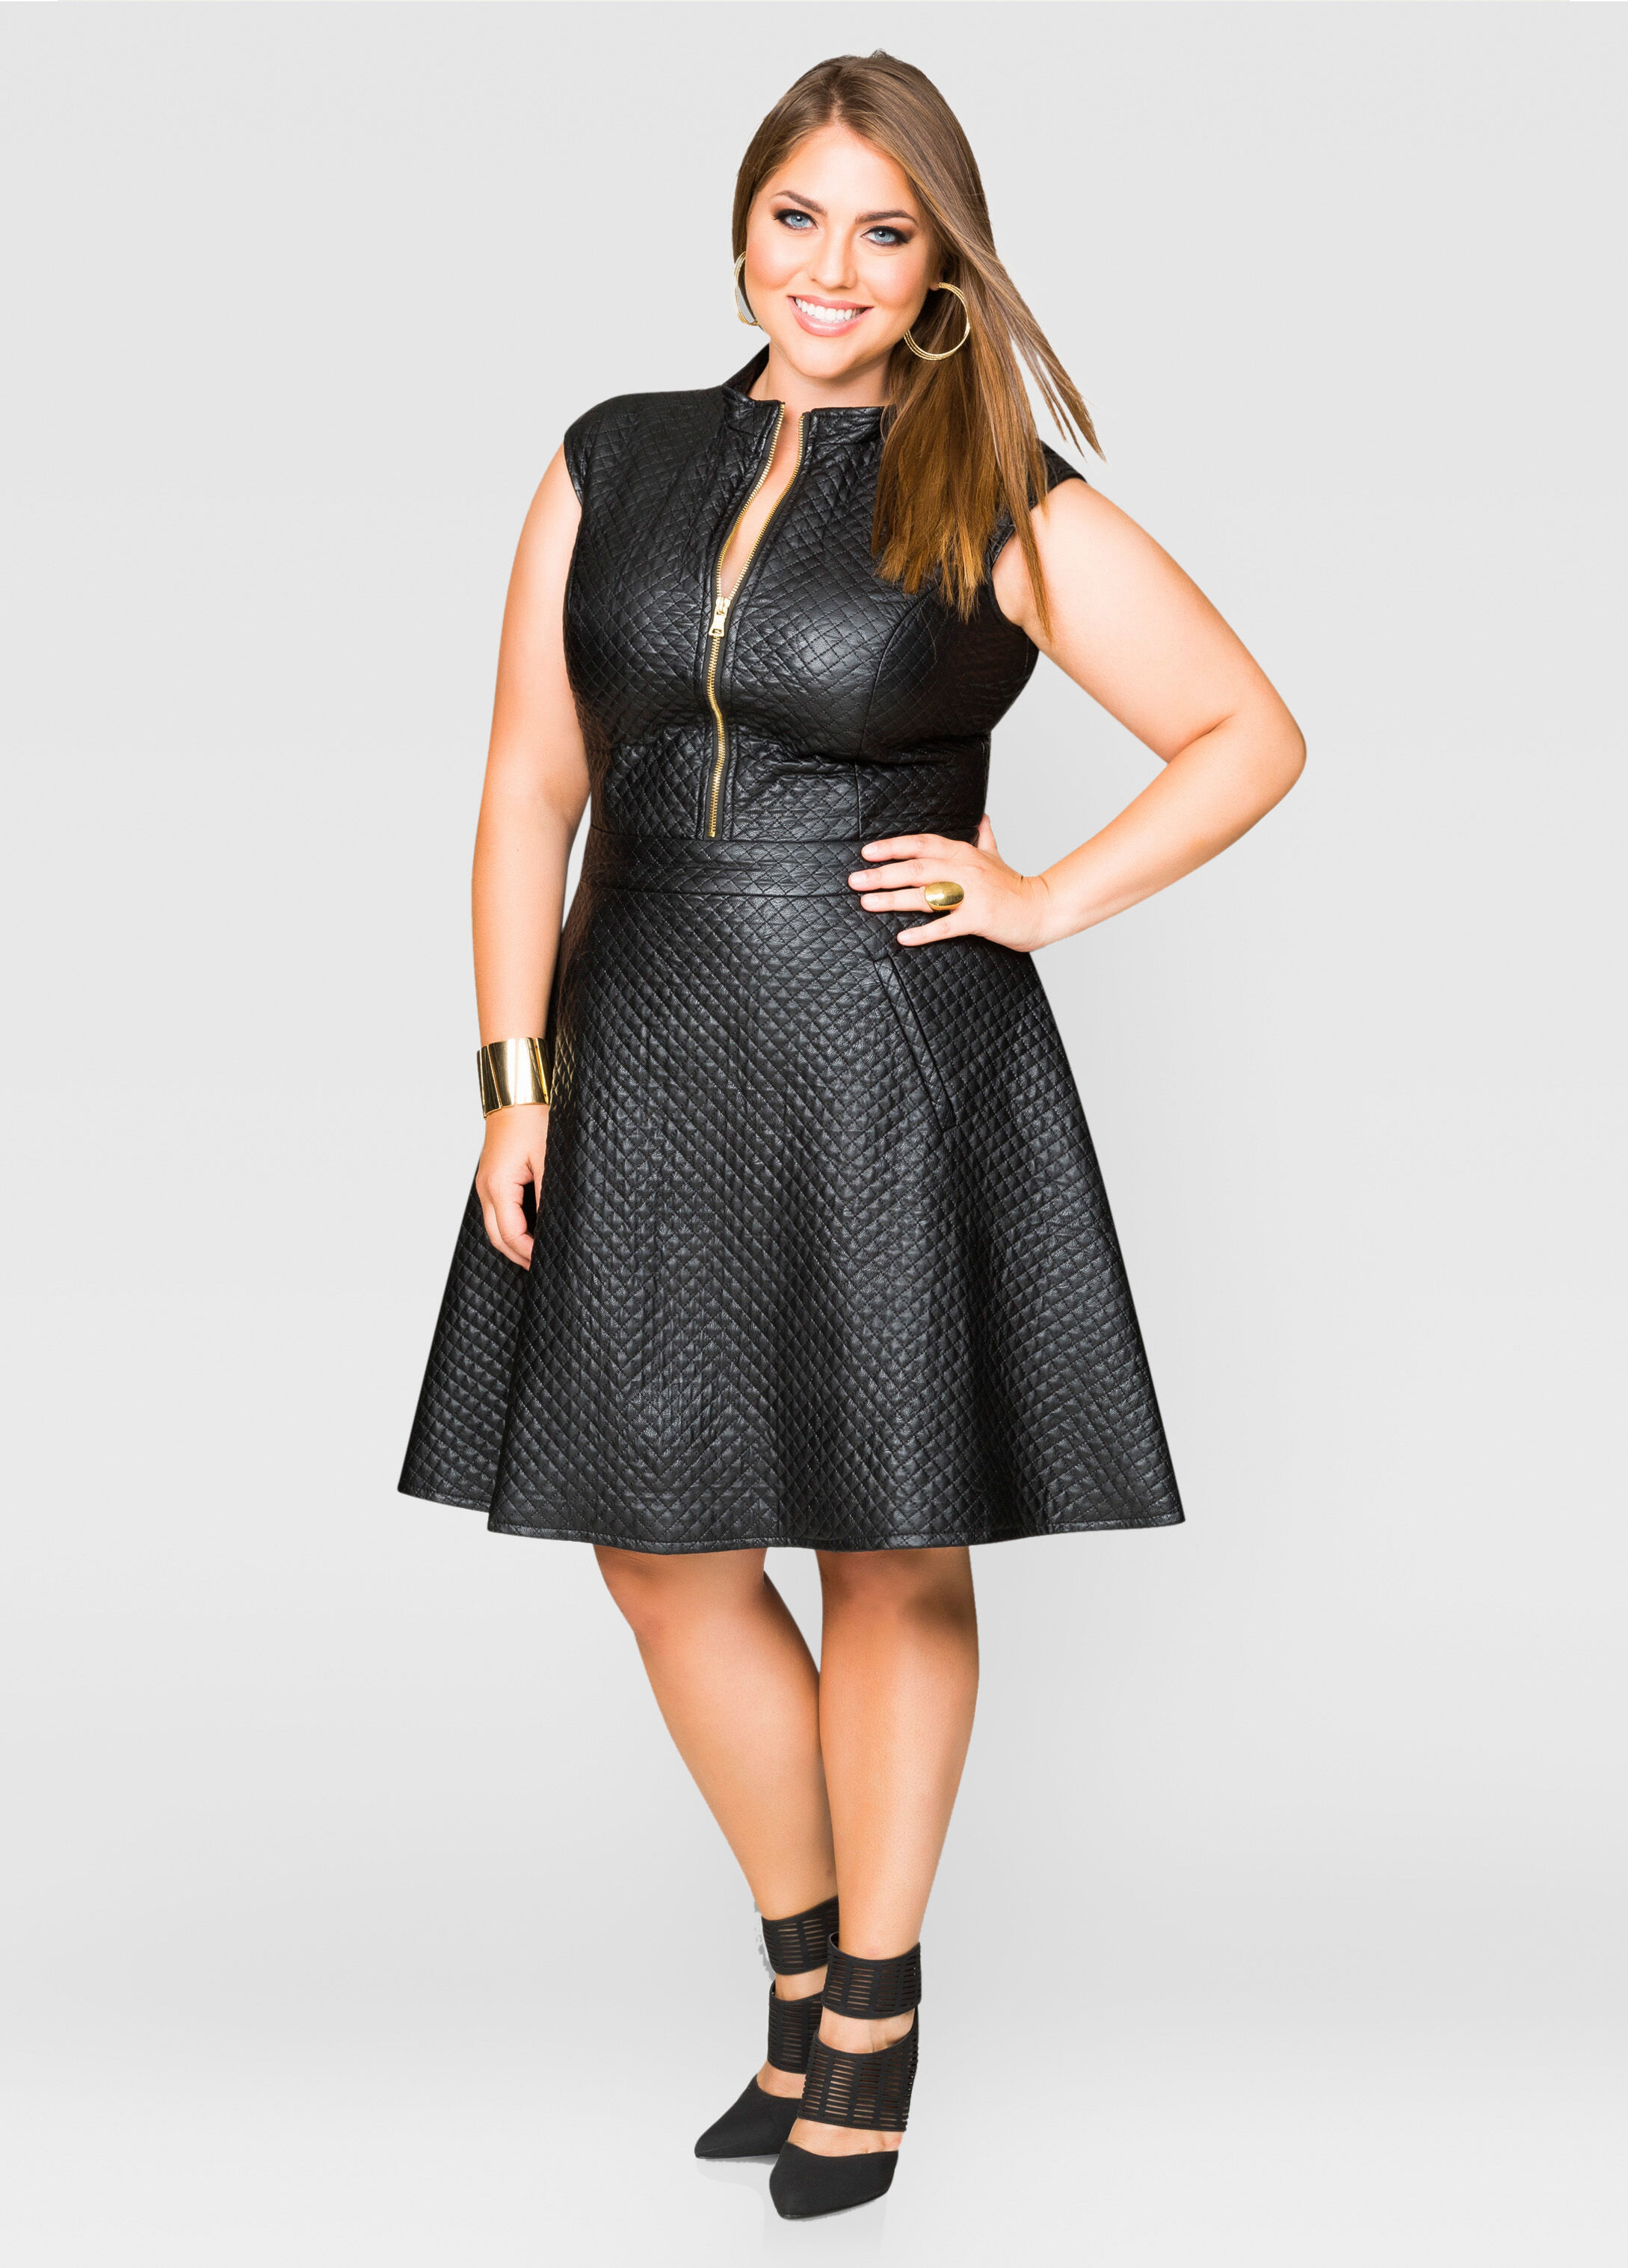 Quilted Faux Leather Skater Dress Plus Size Dresses Ashley